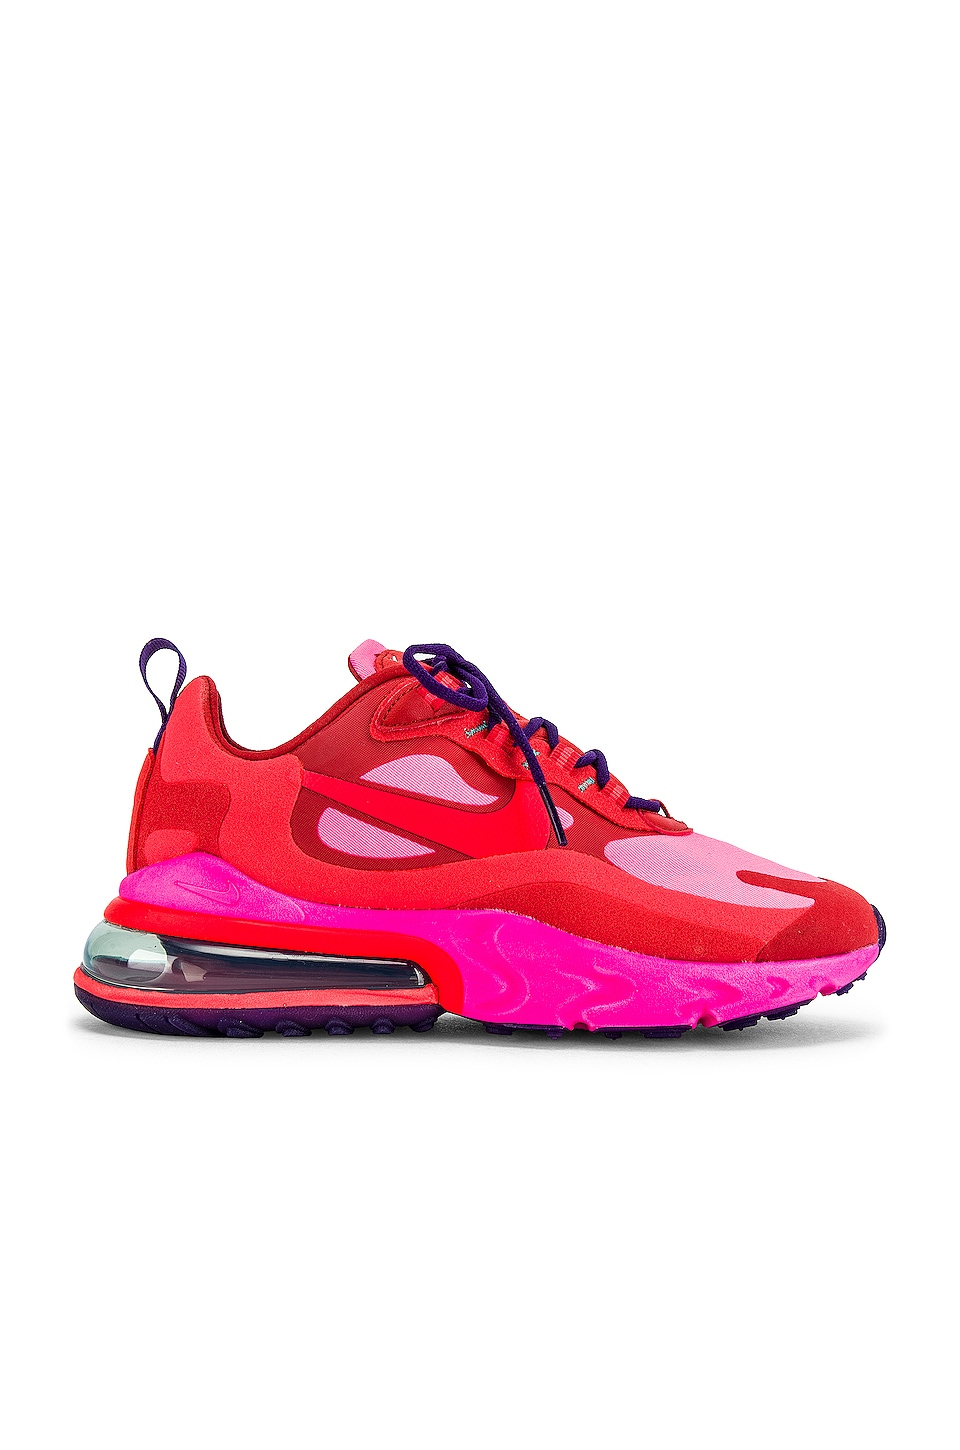 Nike Air Max 270 Sneaker in Mystic Red, Burnt Crimson, Pink Blast, Habanero & Red Court